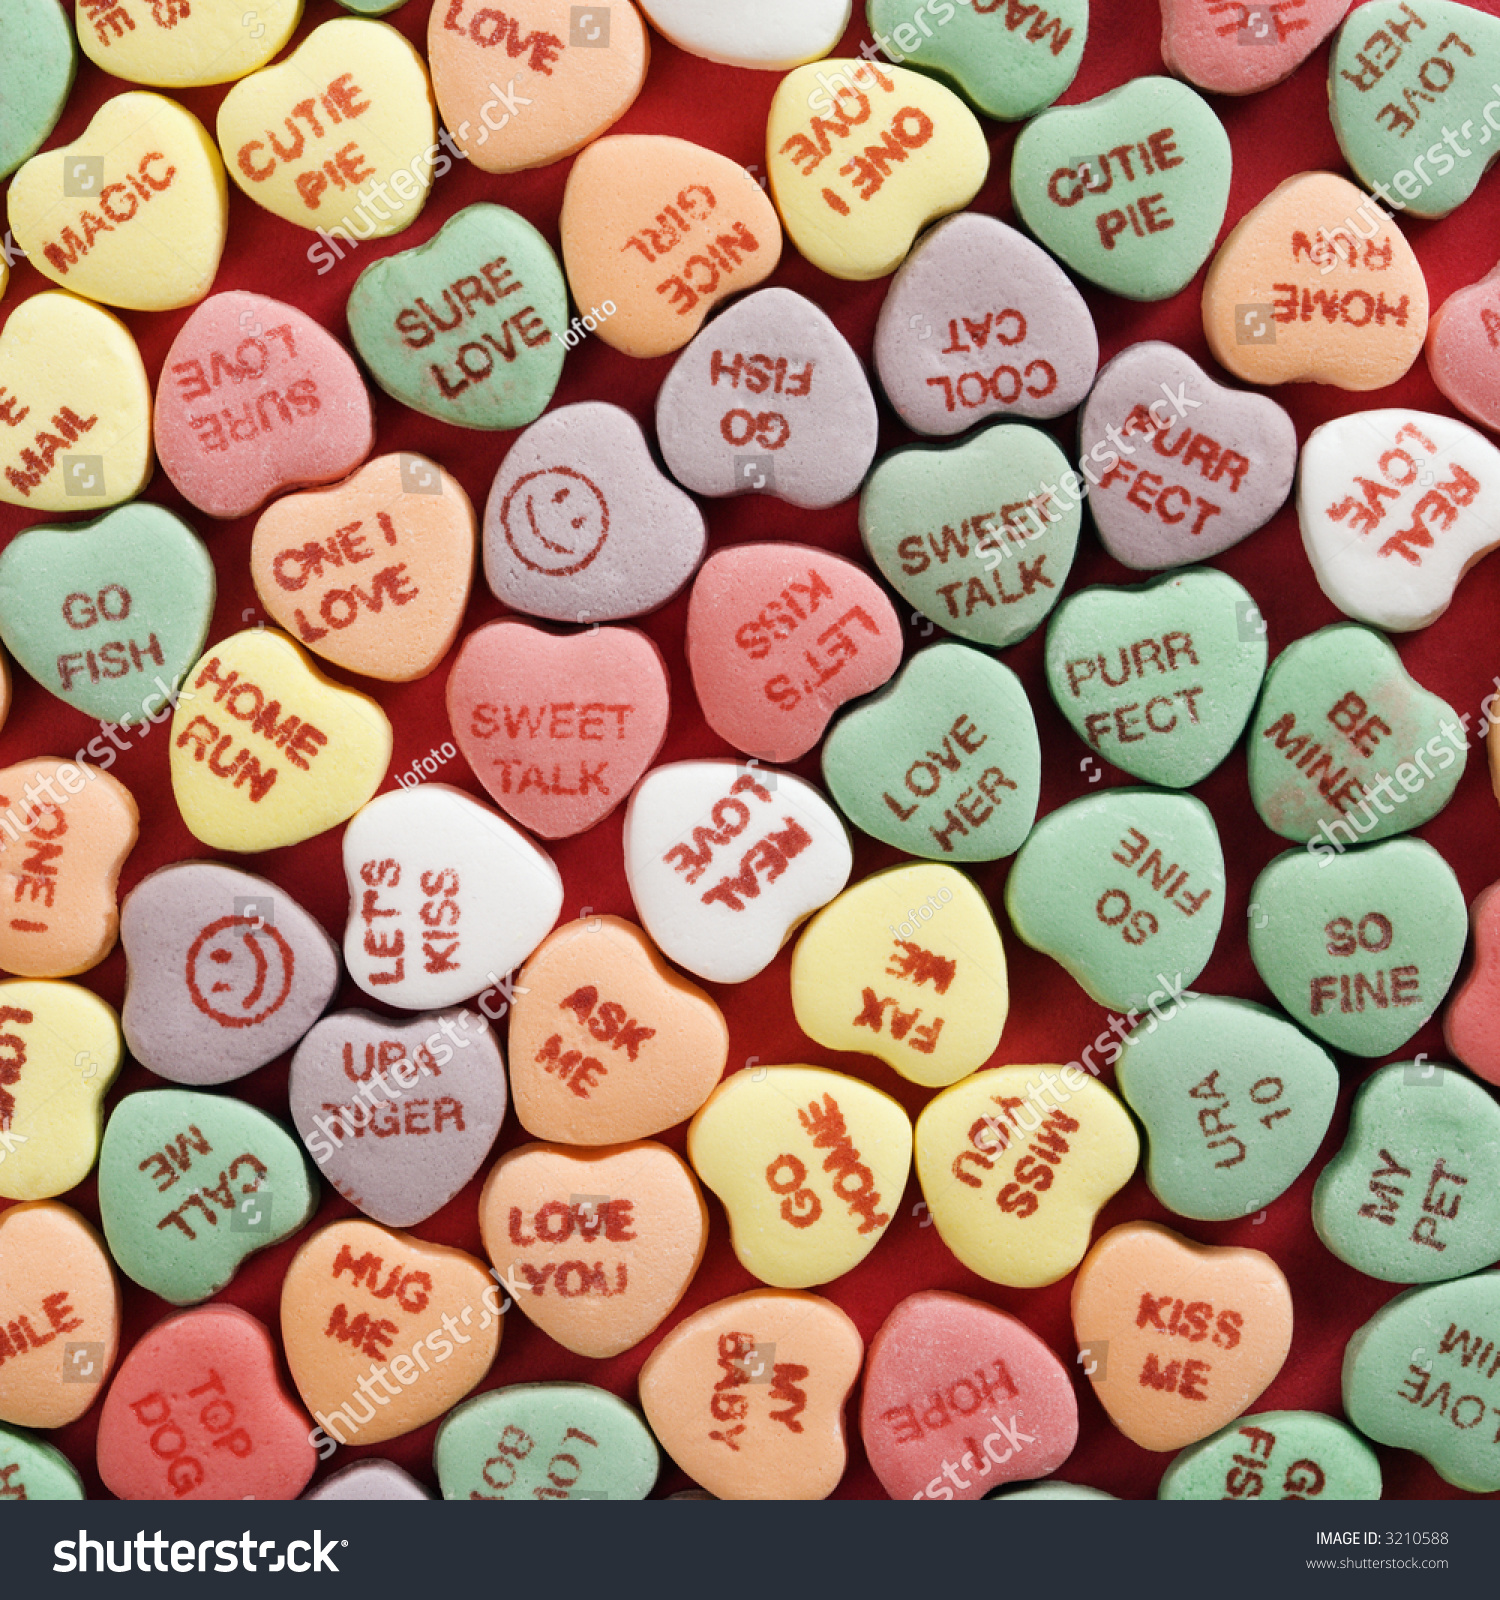 Candy Anniversary Sayings Stock Photo Large Group Of Colorful Candy Hearts